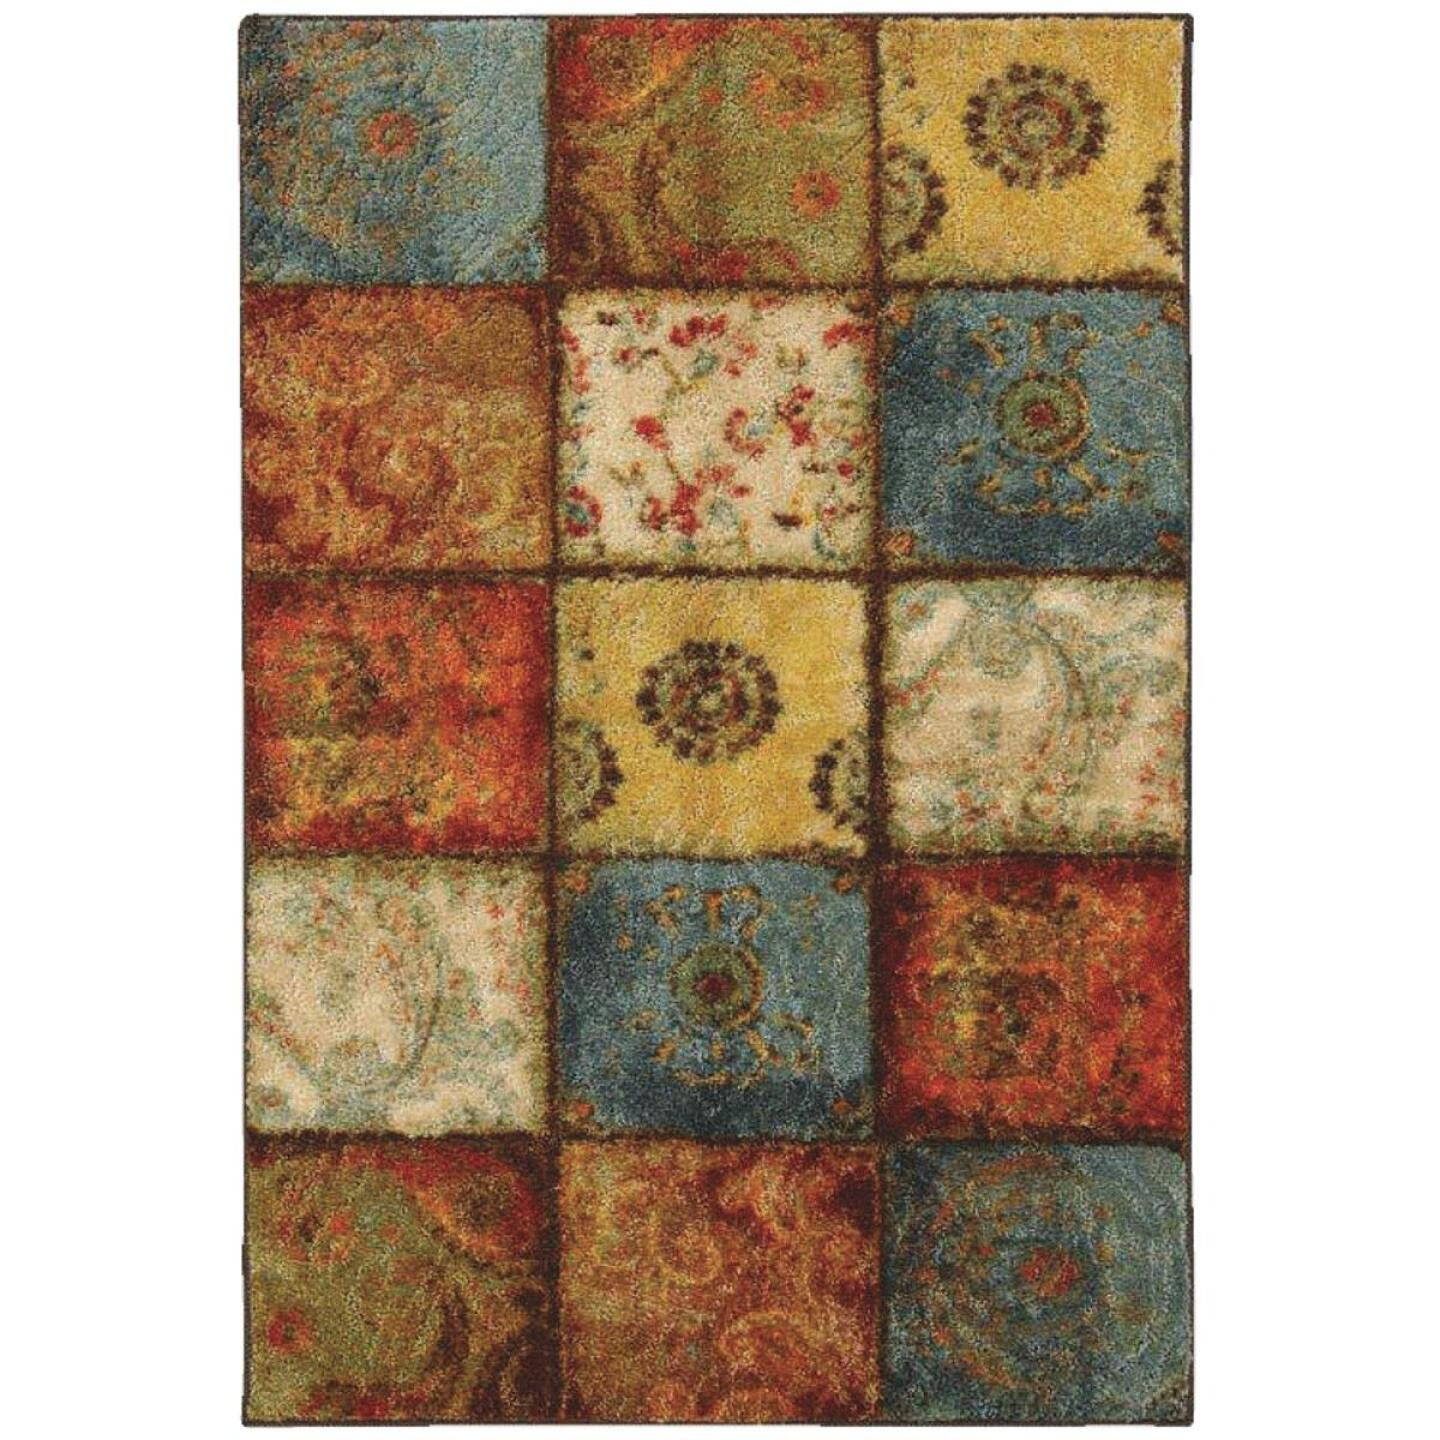 Mohawk Home Artifact Multi-Panel 5 Ft. x 8 Ft. Area Rug Image 1